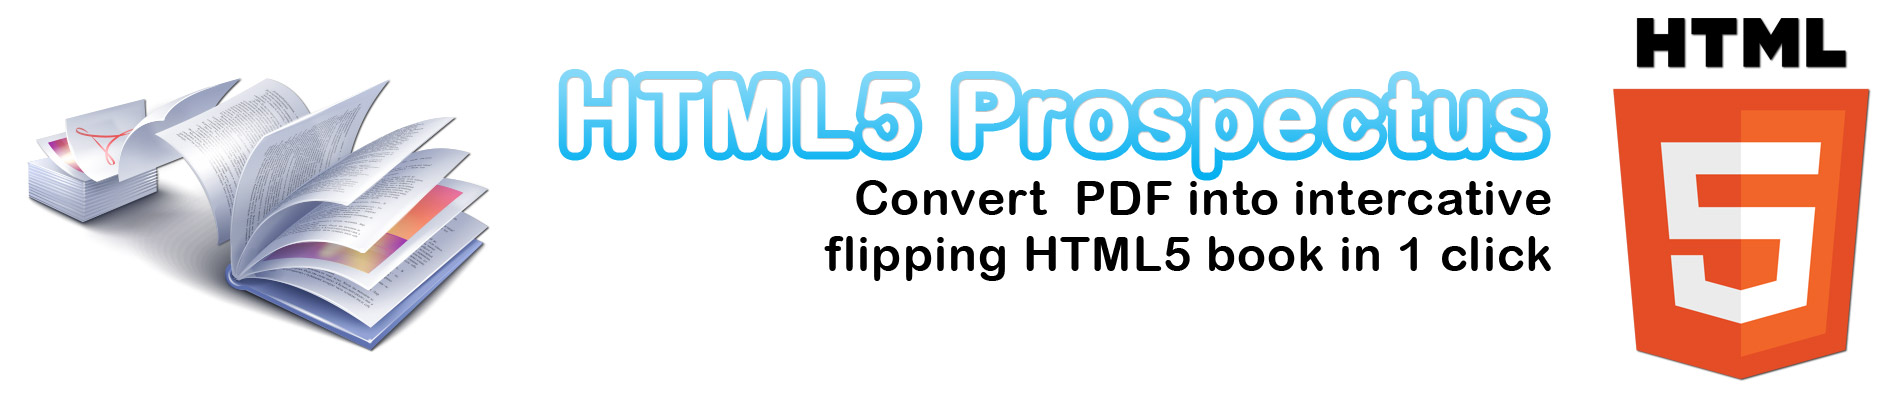 Flipping interactive HTML5 book